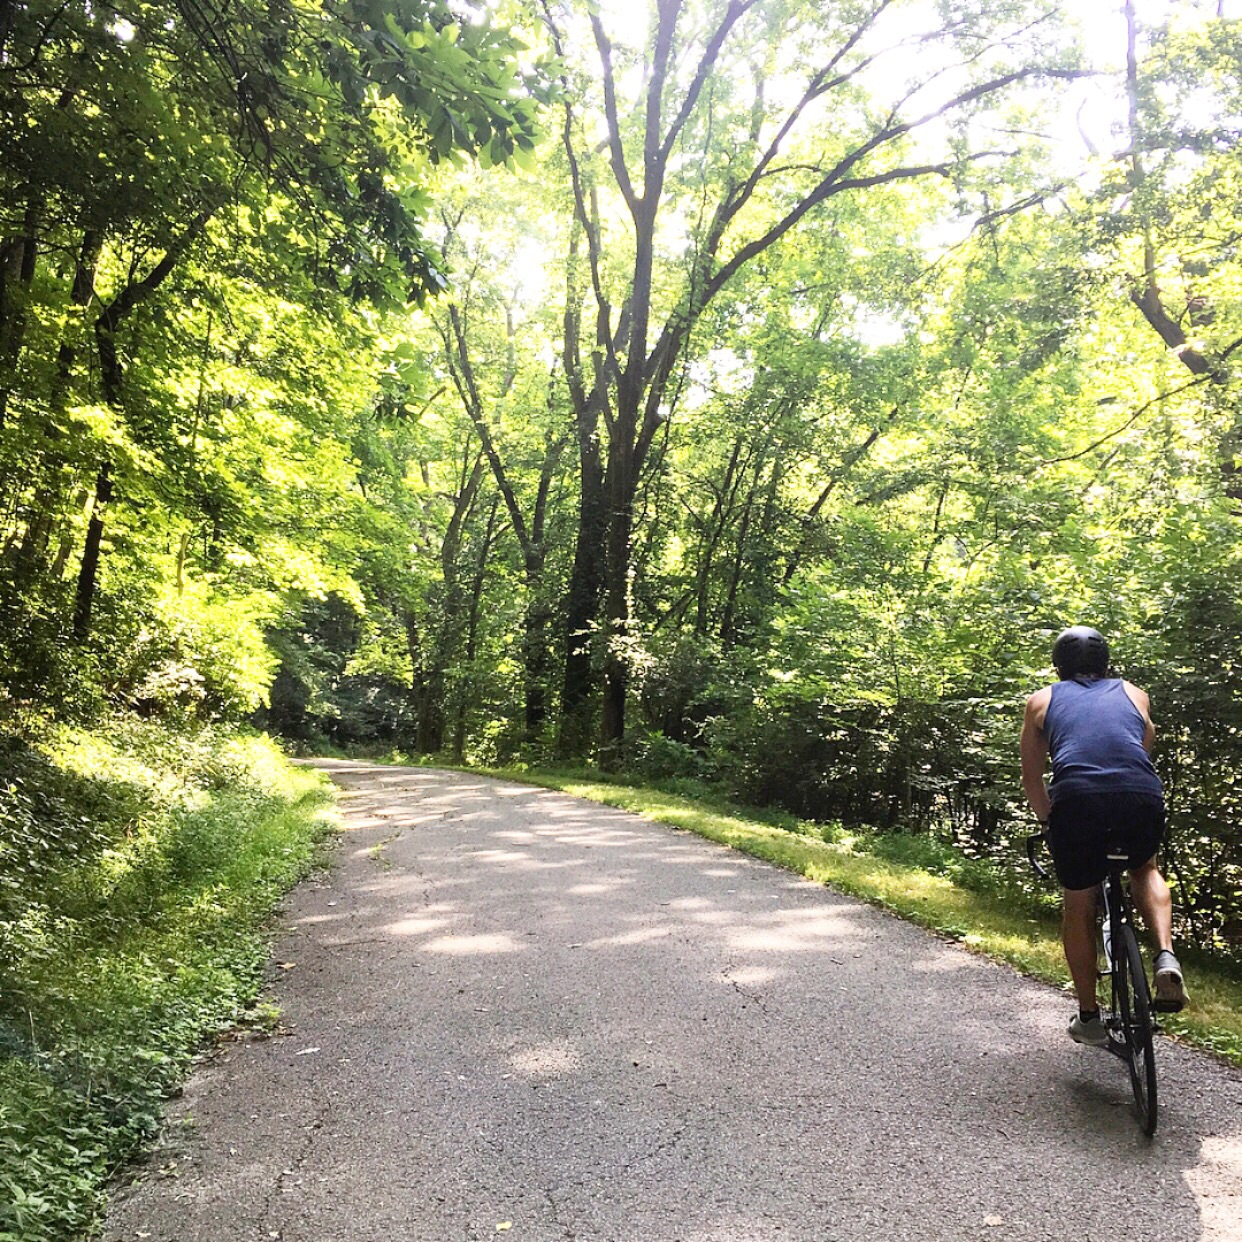 We biked and hiked in Percy Warner Park - one of our favorites!